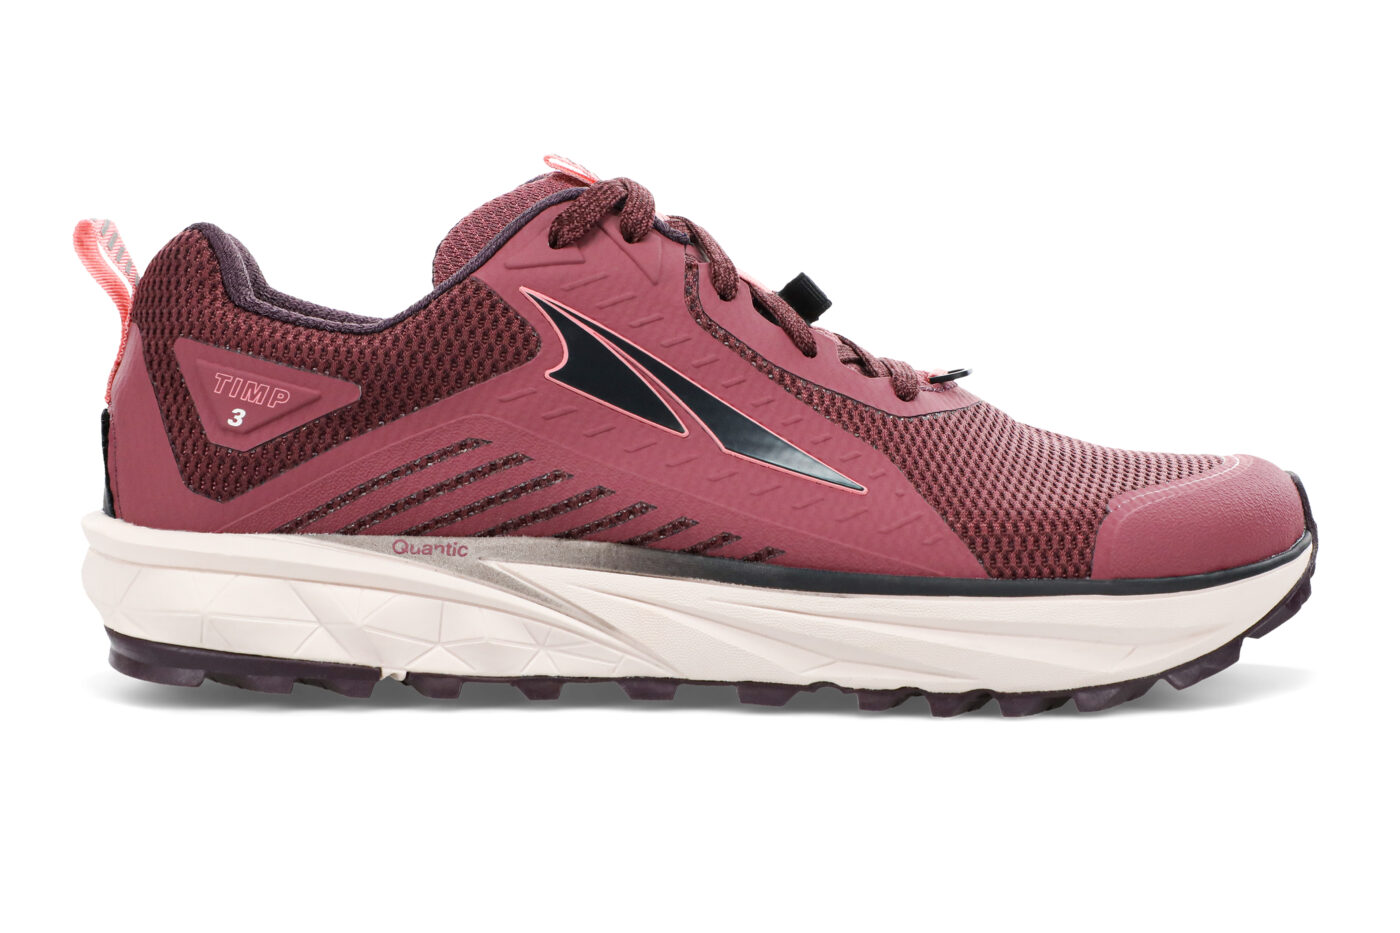 altra timp 3 trail chaussures